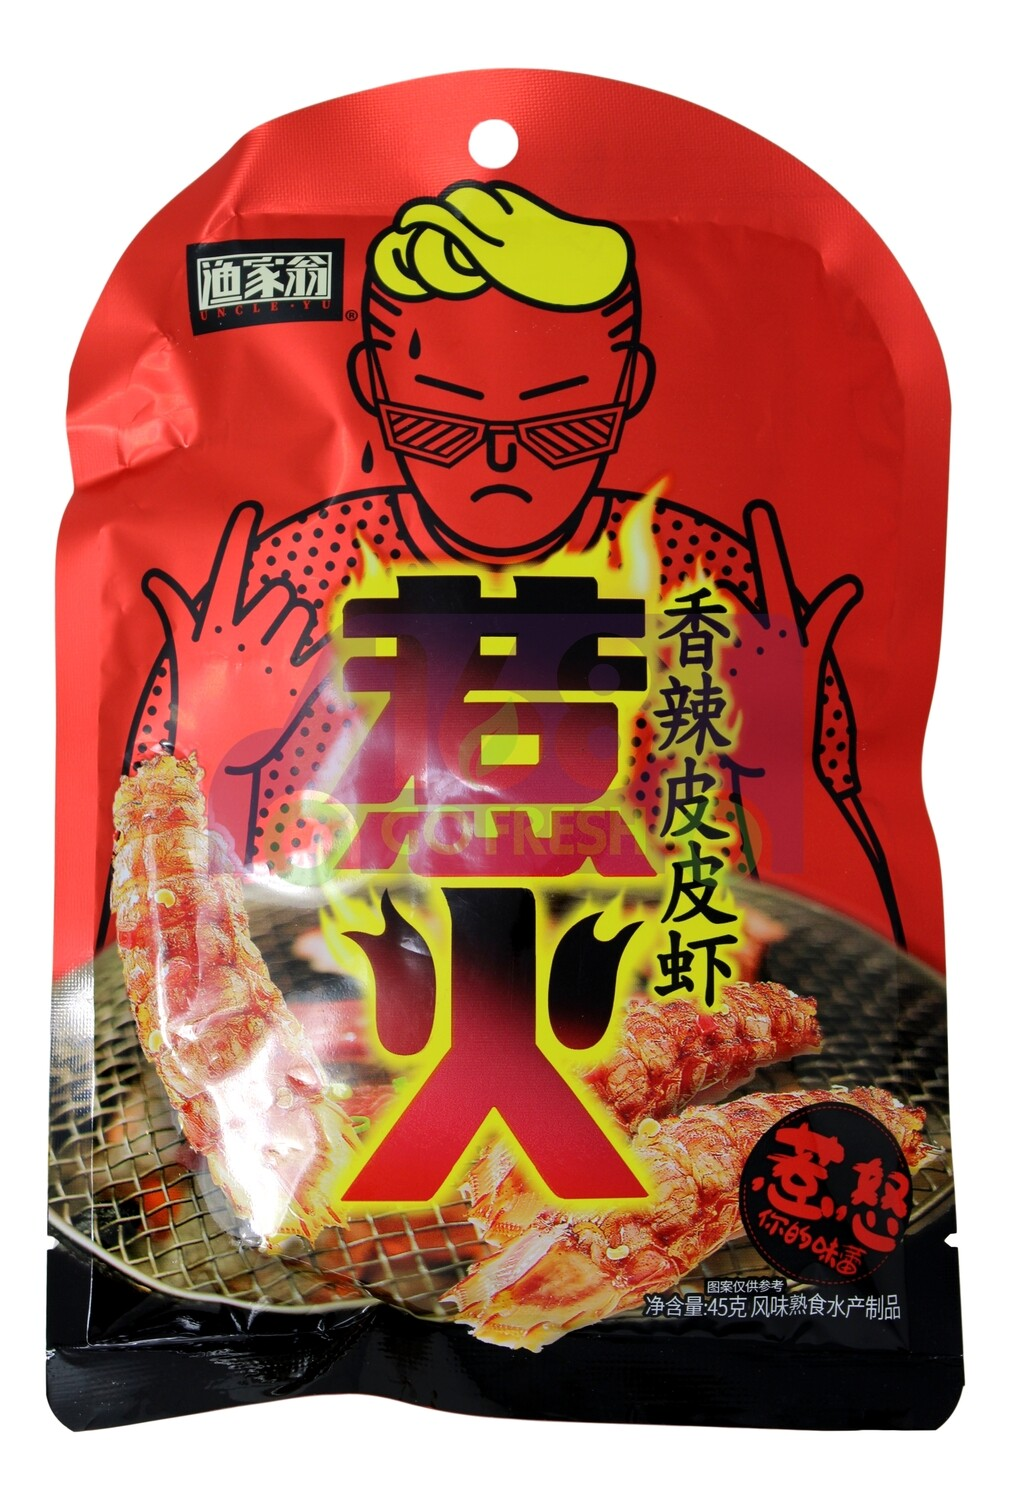 UNCLEYU MANTIS SHRIMP - SPICY FLA 渔家翁 惹火香辣皮皮虾(270G)